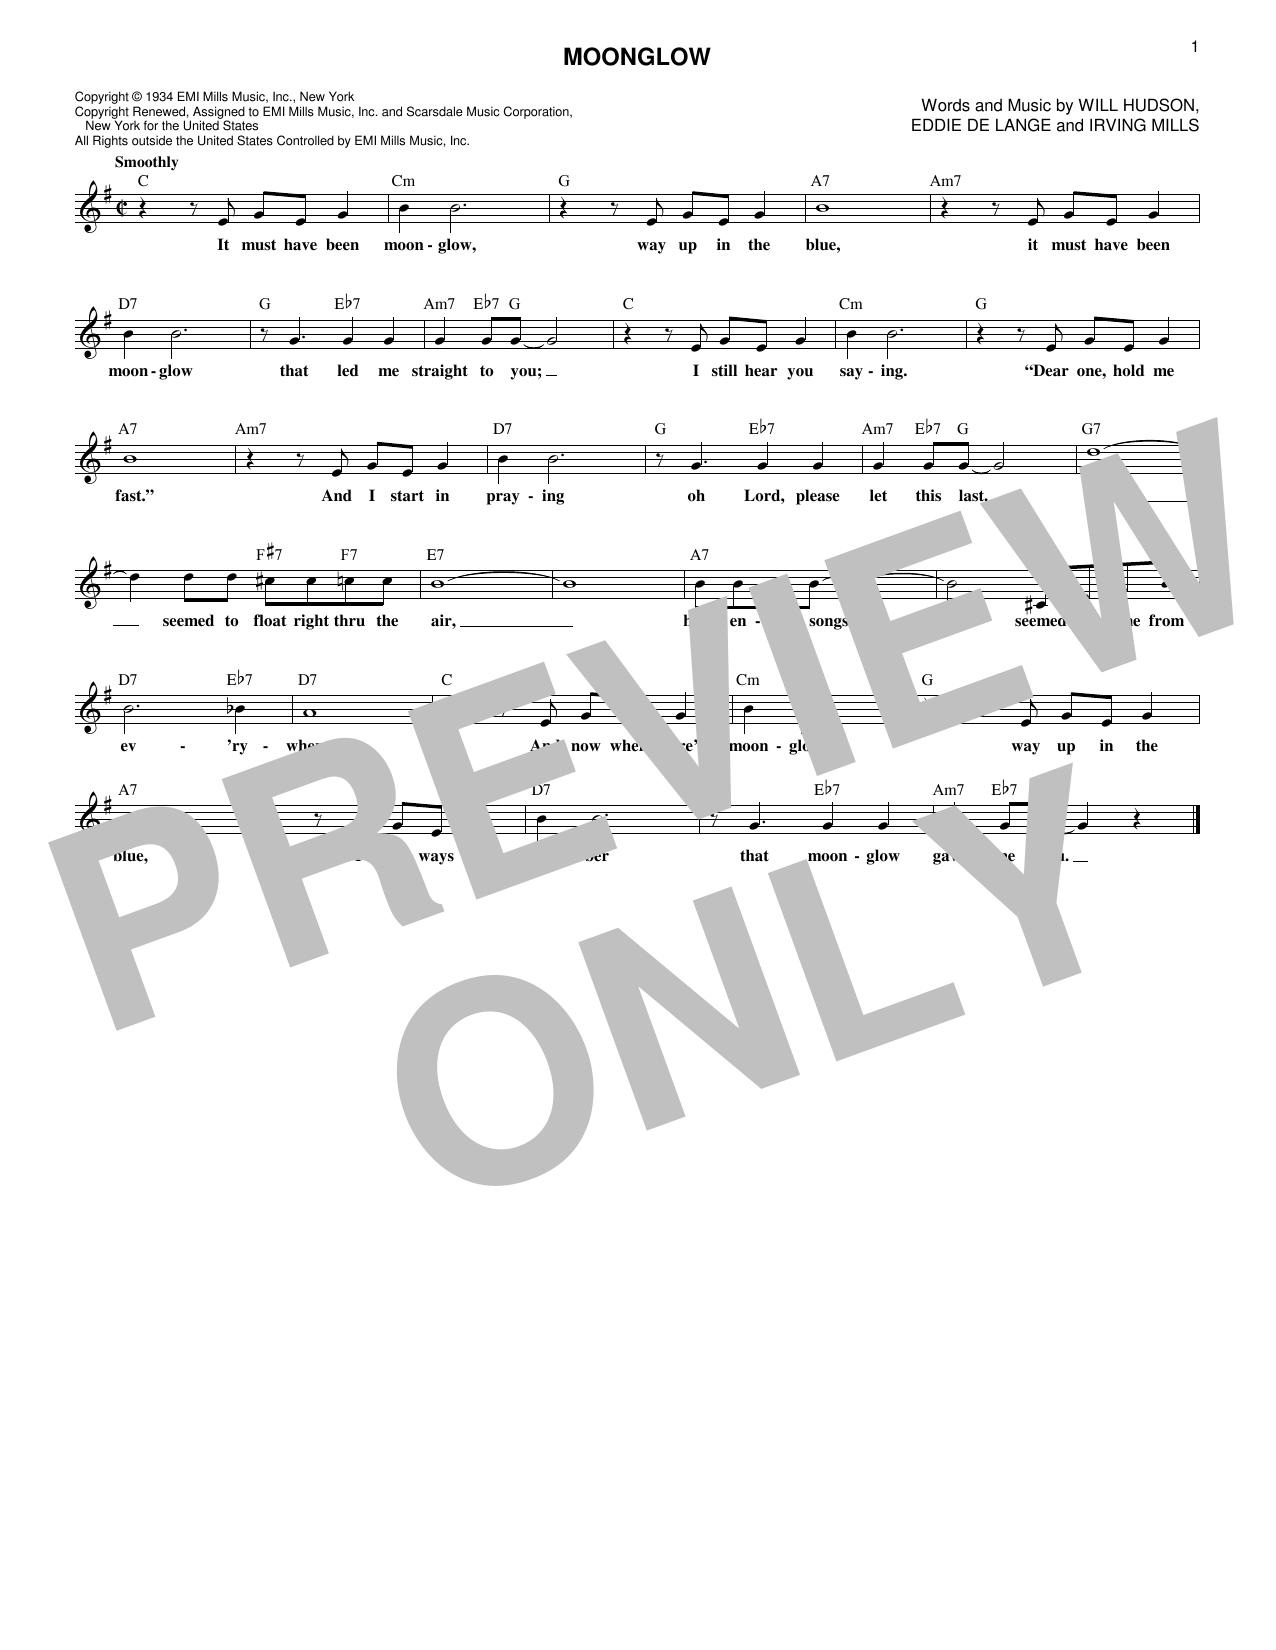 Will Hudson, Eddie DeLange and Irving Mills Moonglow sheet music notes and chords. Download Printable PDF.